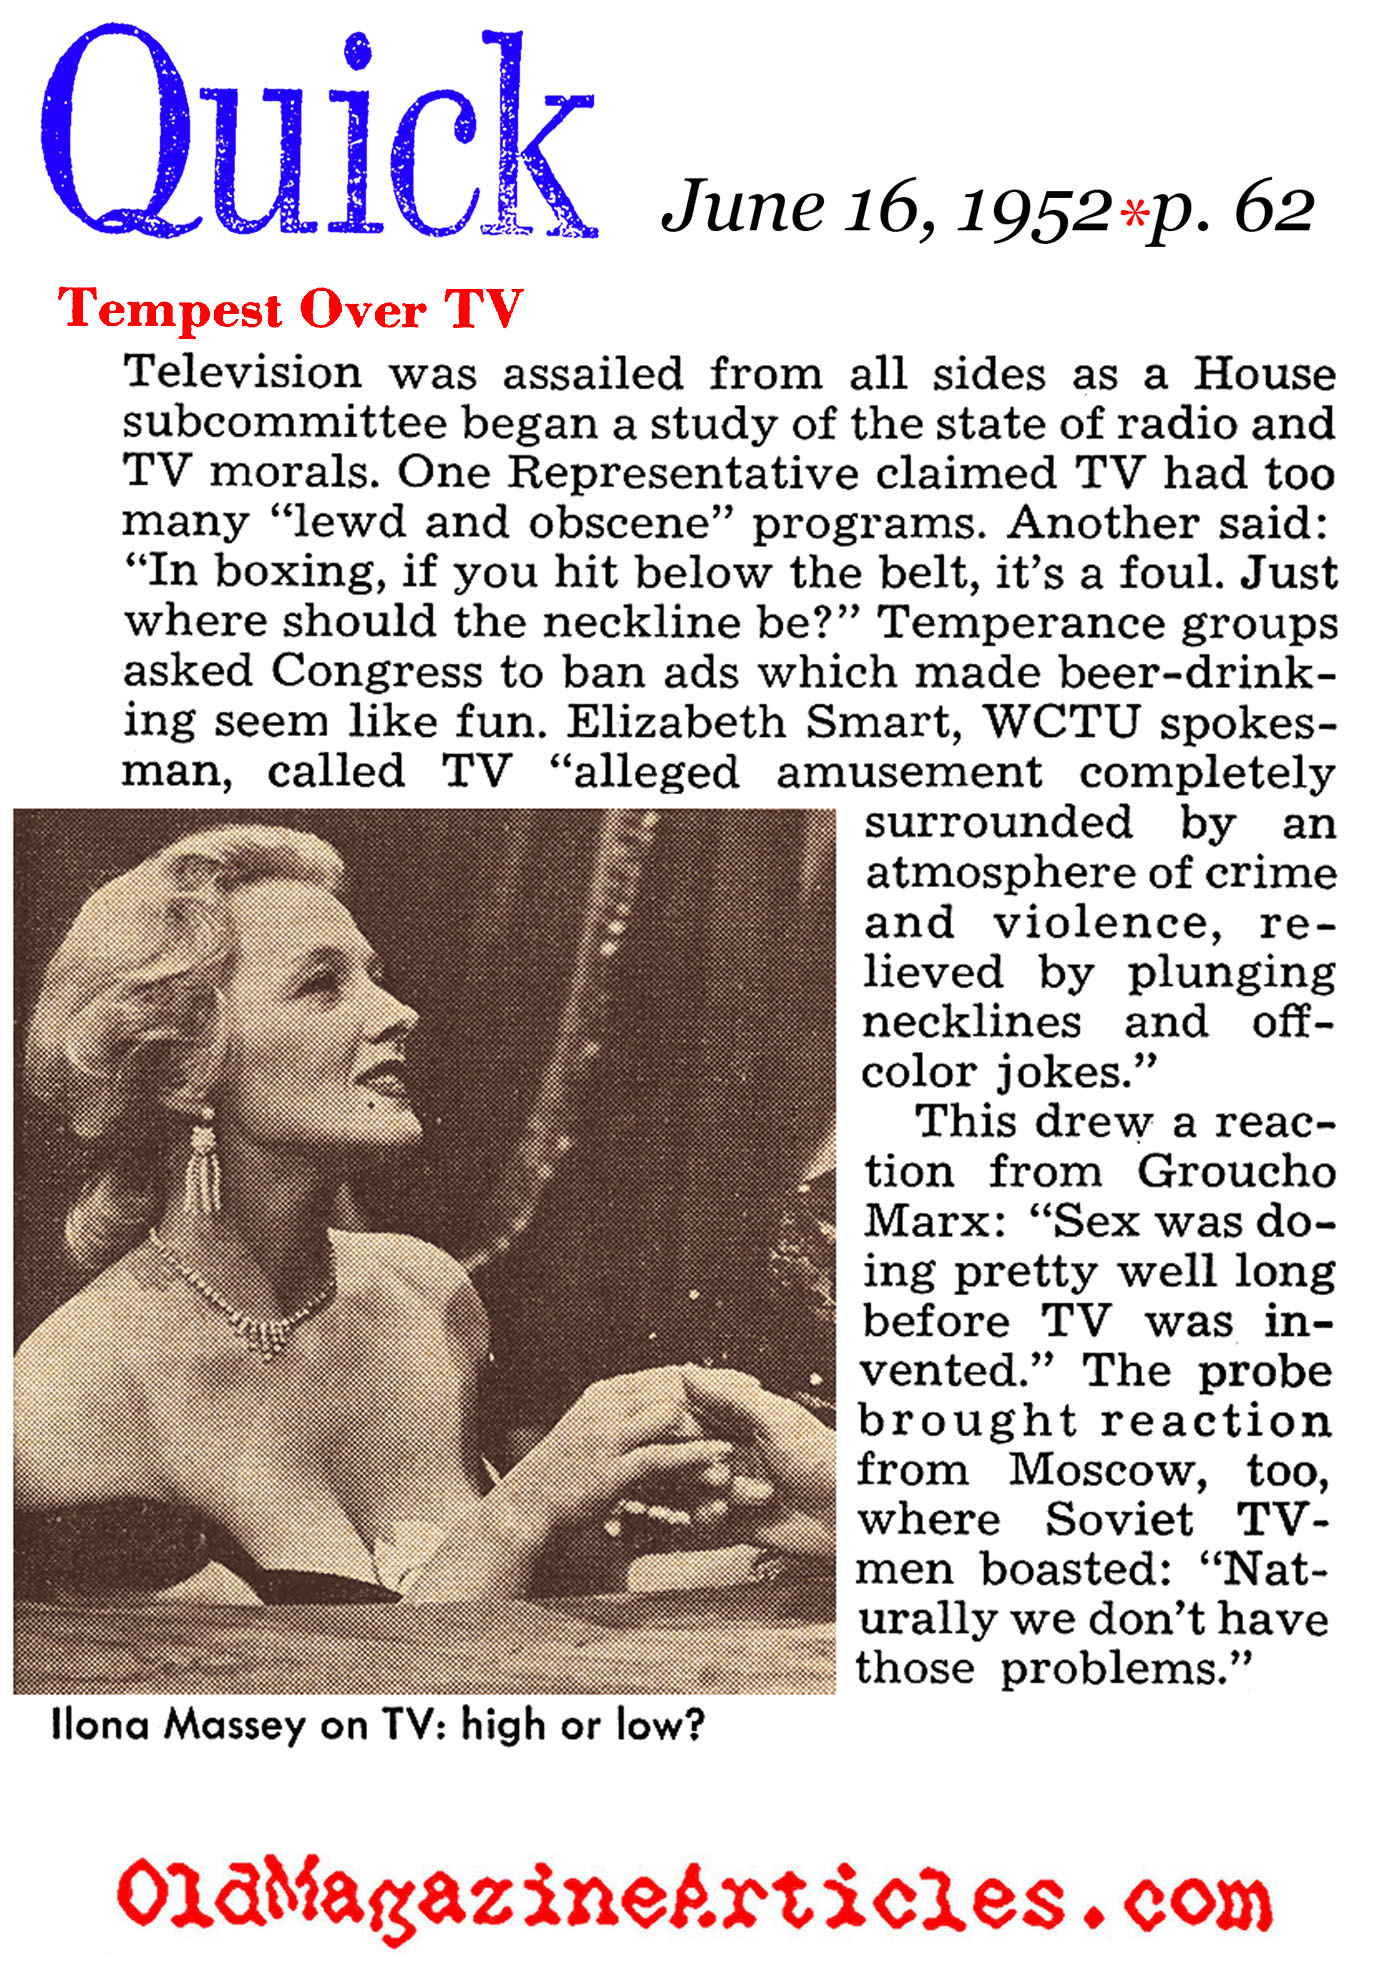 Congress Examines the Morals Portryed on T.V. (Quick Magazine, 1952)